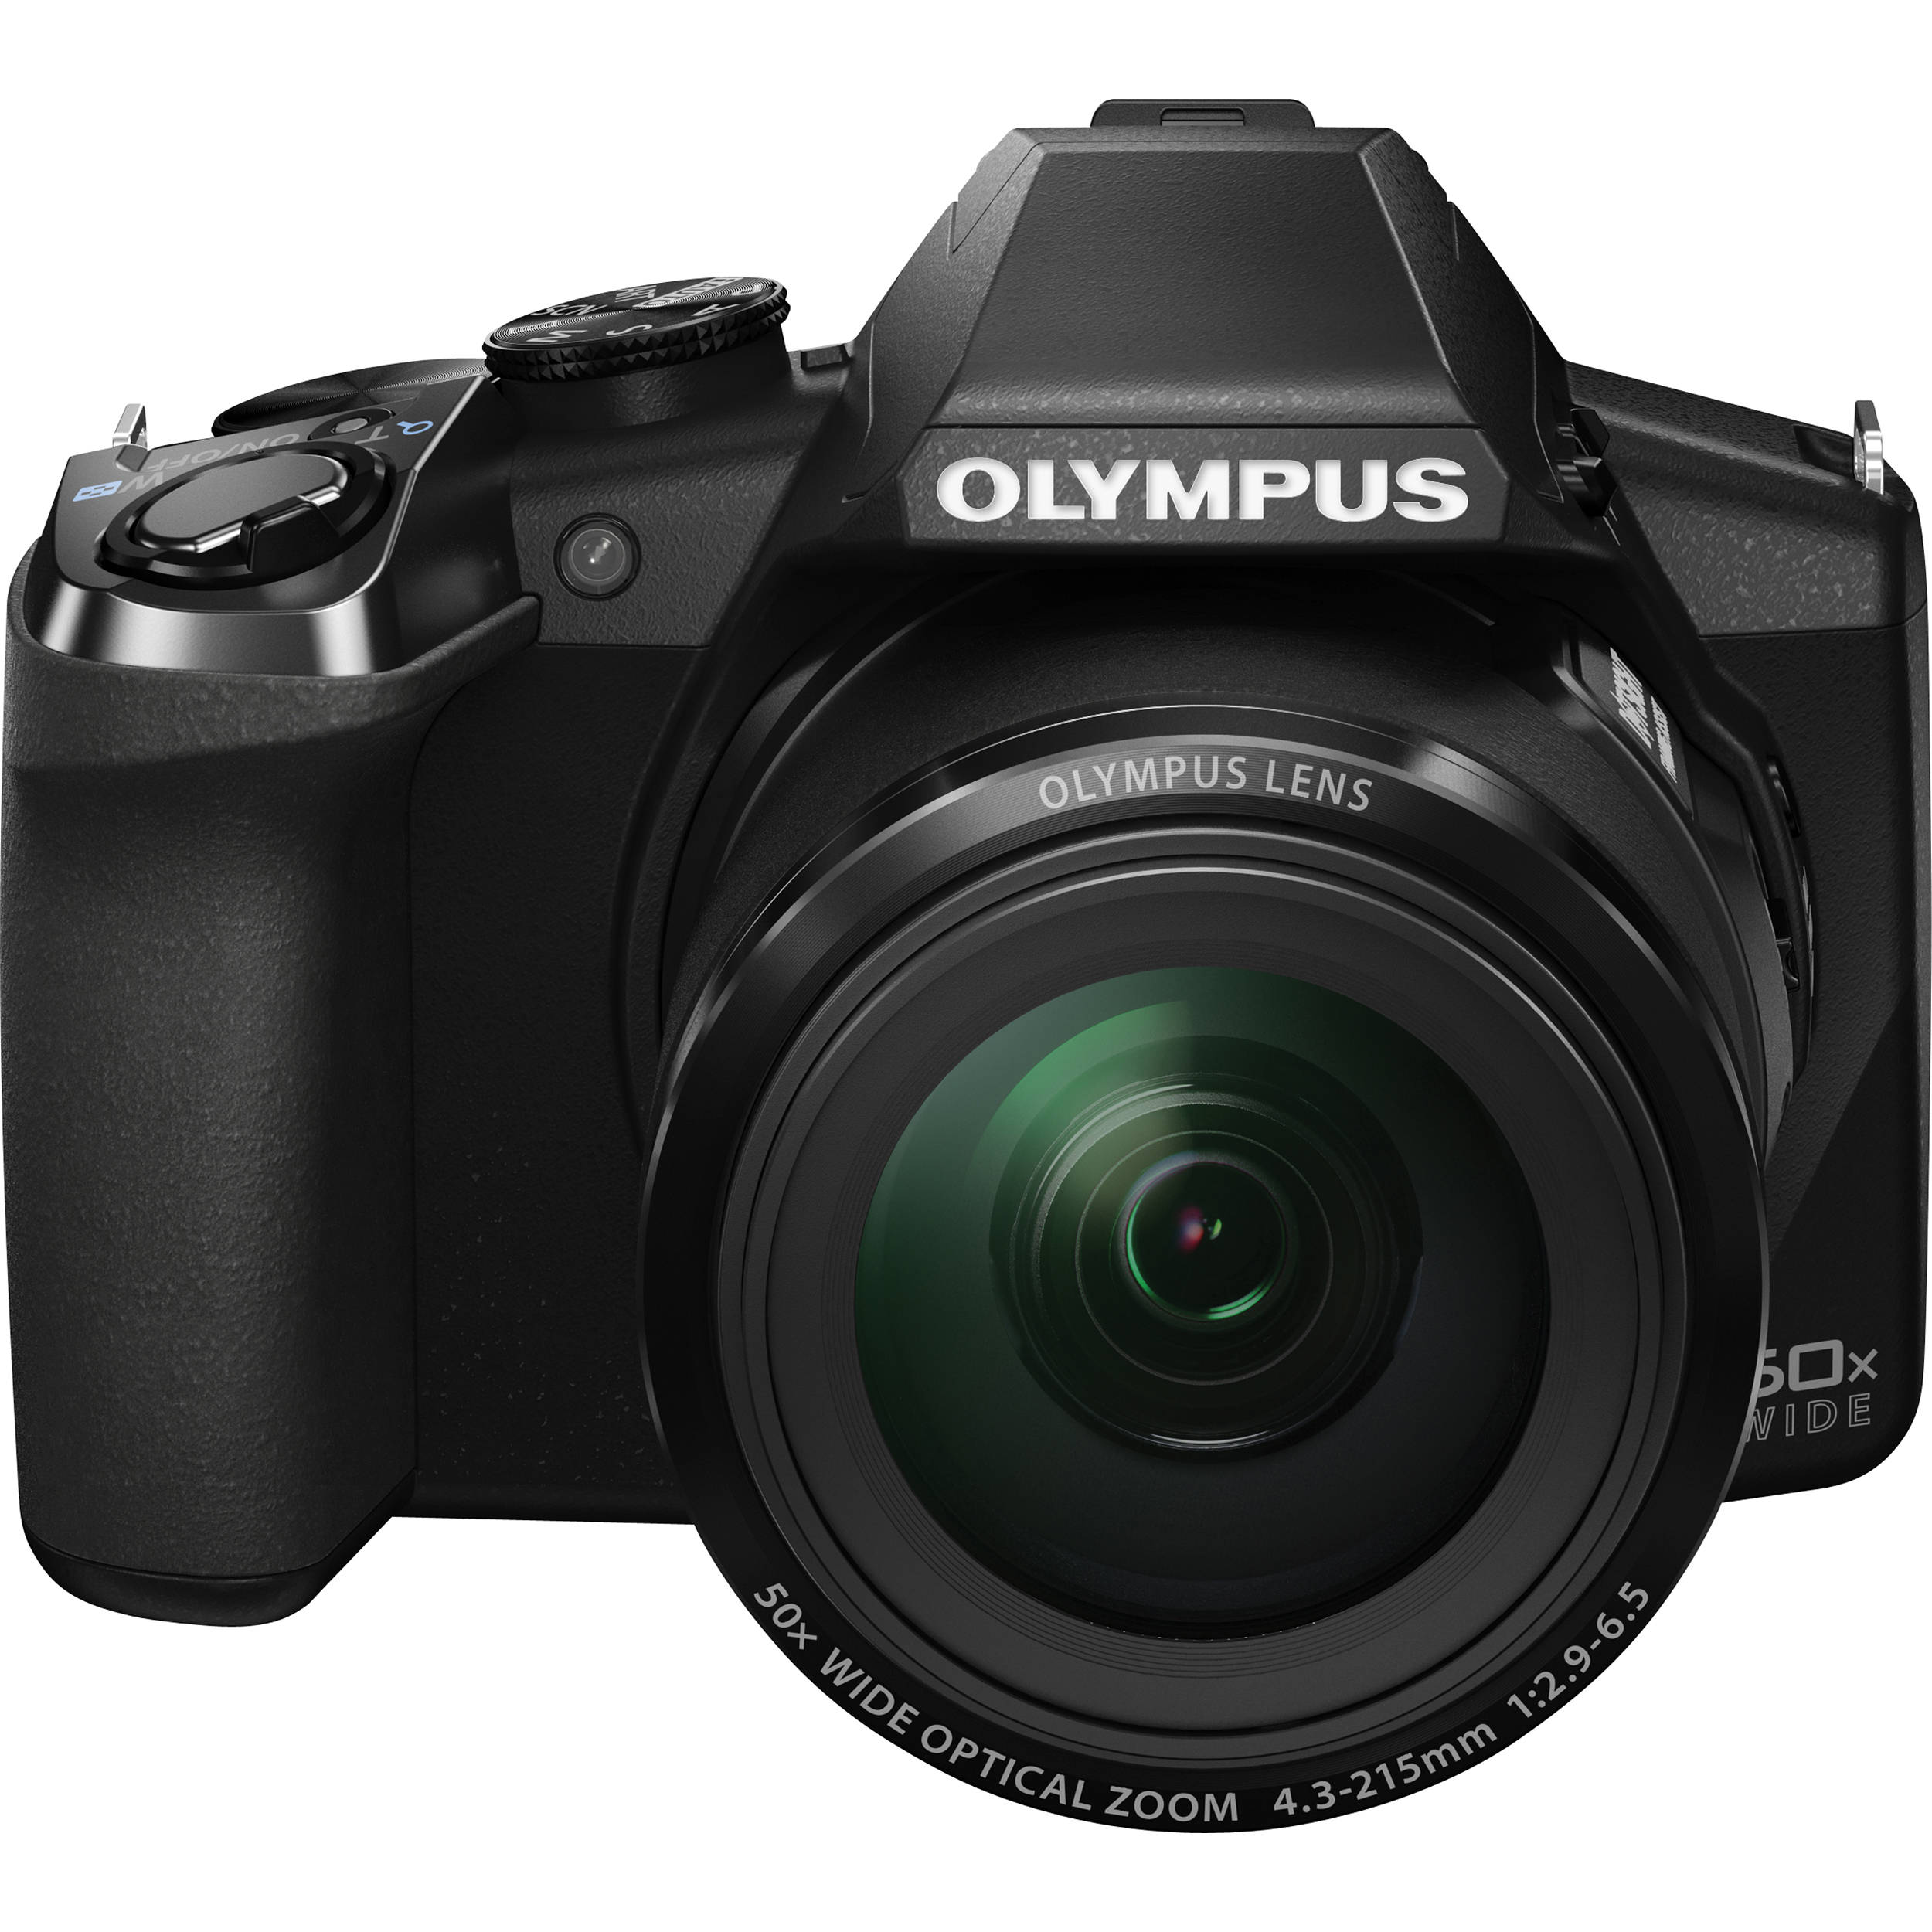 Olympus Stylus SP-100 Digital Camera V103070BU000 B&H Photo